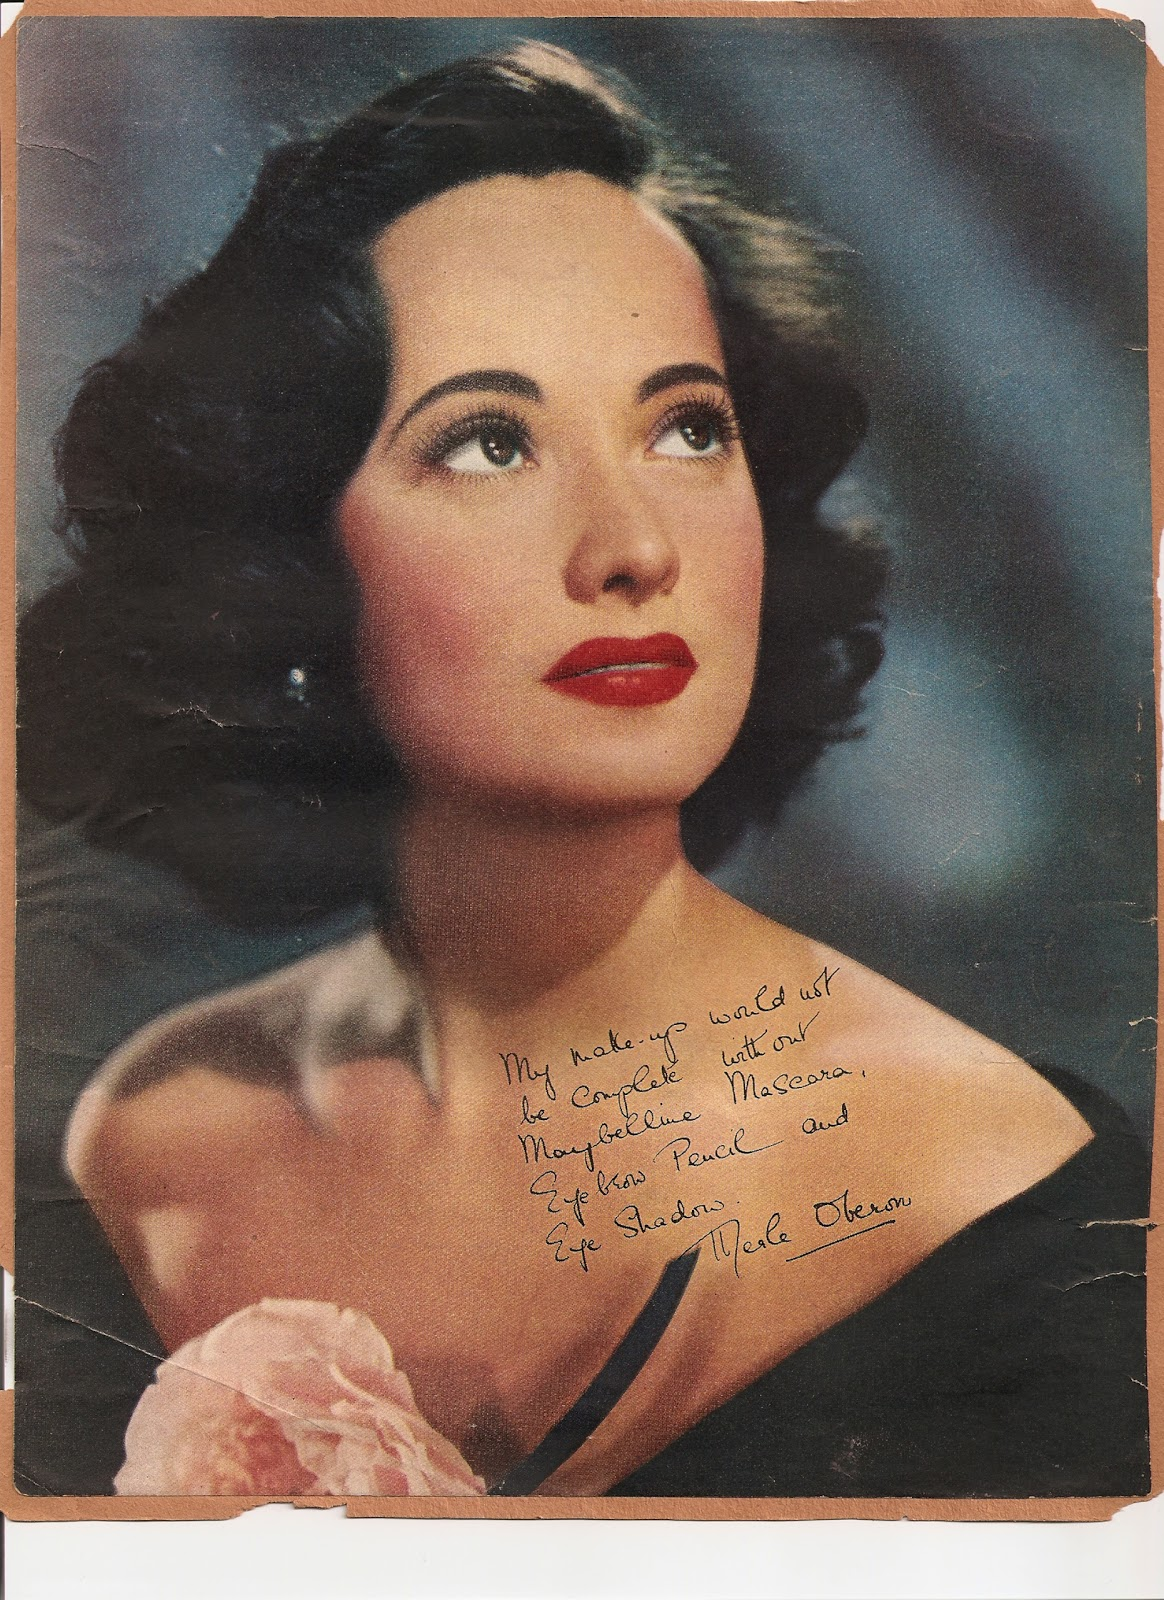 THE MAYBELLINE STORY Merle Oberon One Of Maybellines